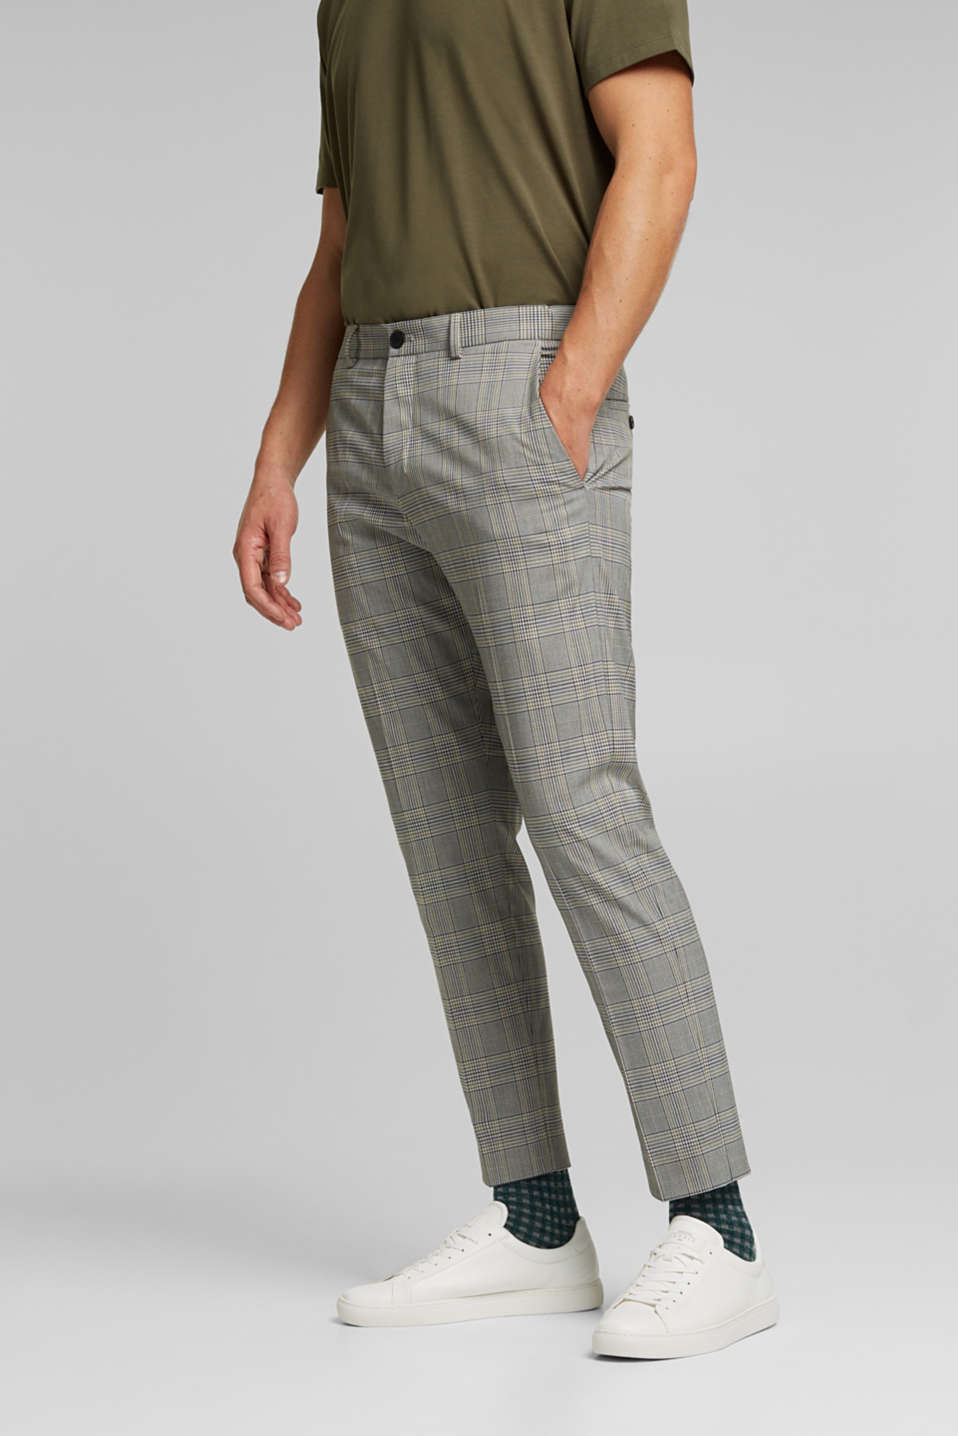 Esprit - Mix + Match CARREAUX PRINCE DE GALLES : le pantalon